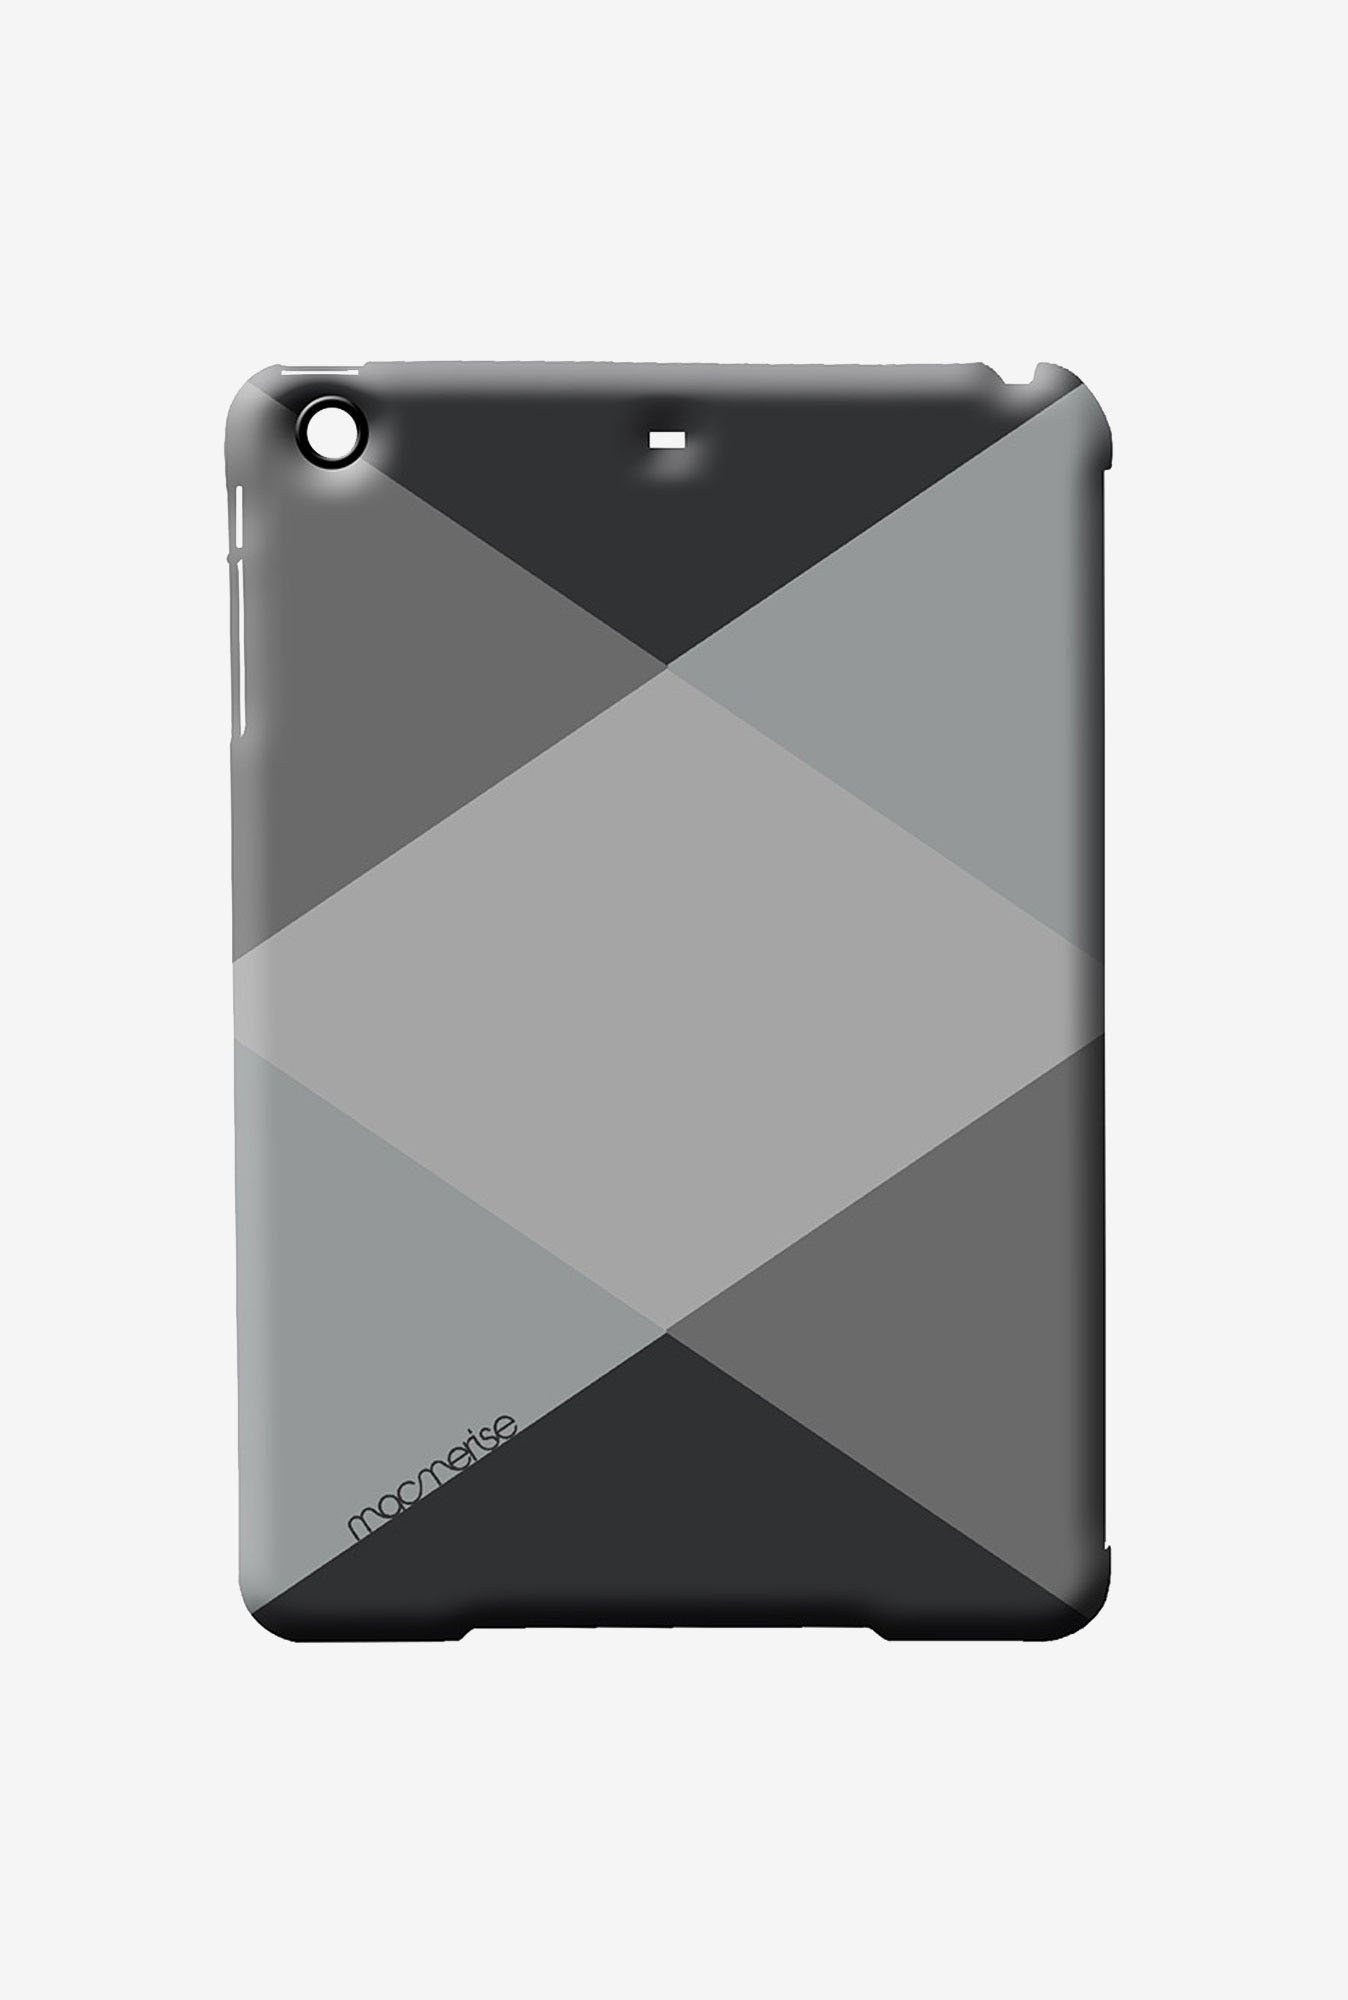 Macmerise Criss Cross Grey Pro Case for iPad Mini 1/2/3